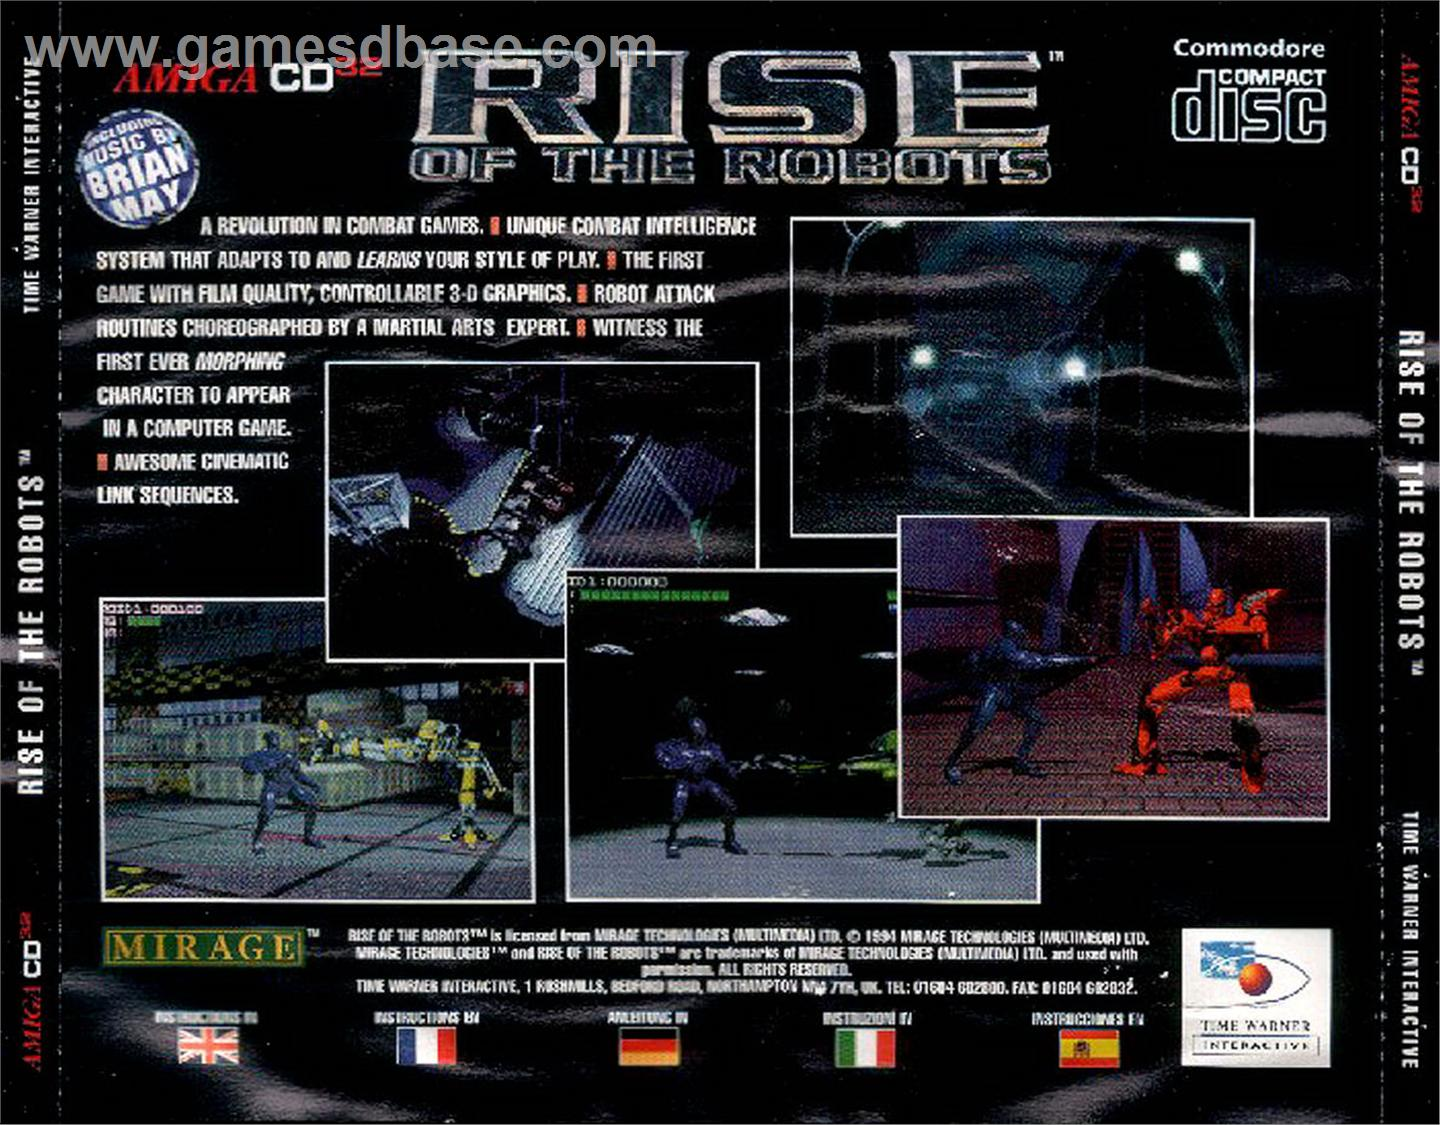 Rise Of The Robots (CD-i) ISO < CD-I ISOs | Emuparadise